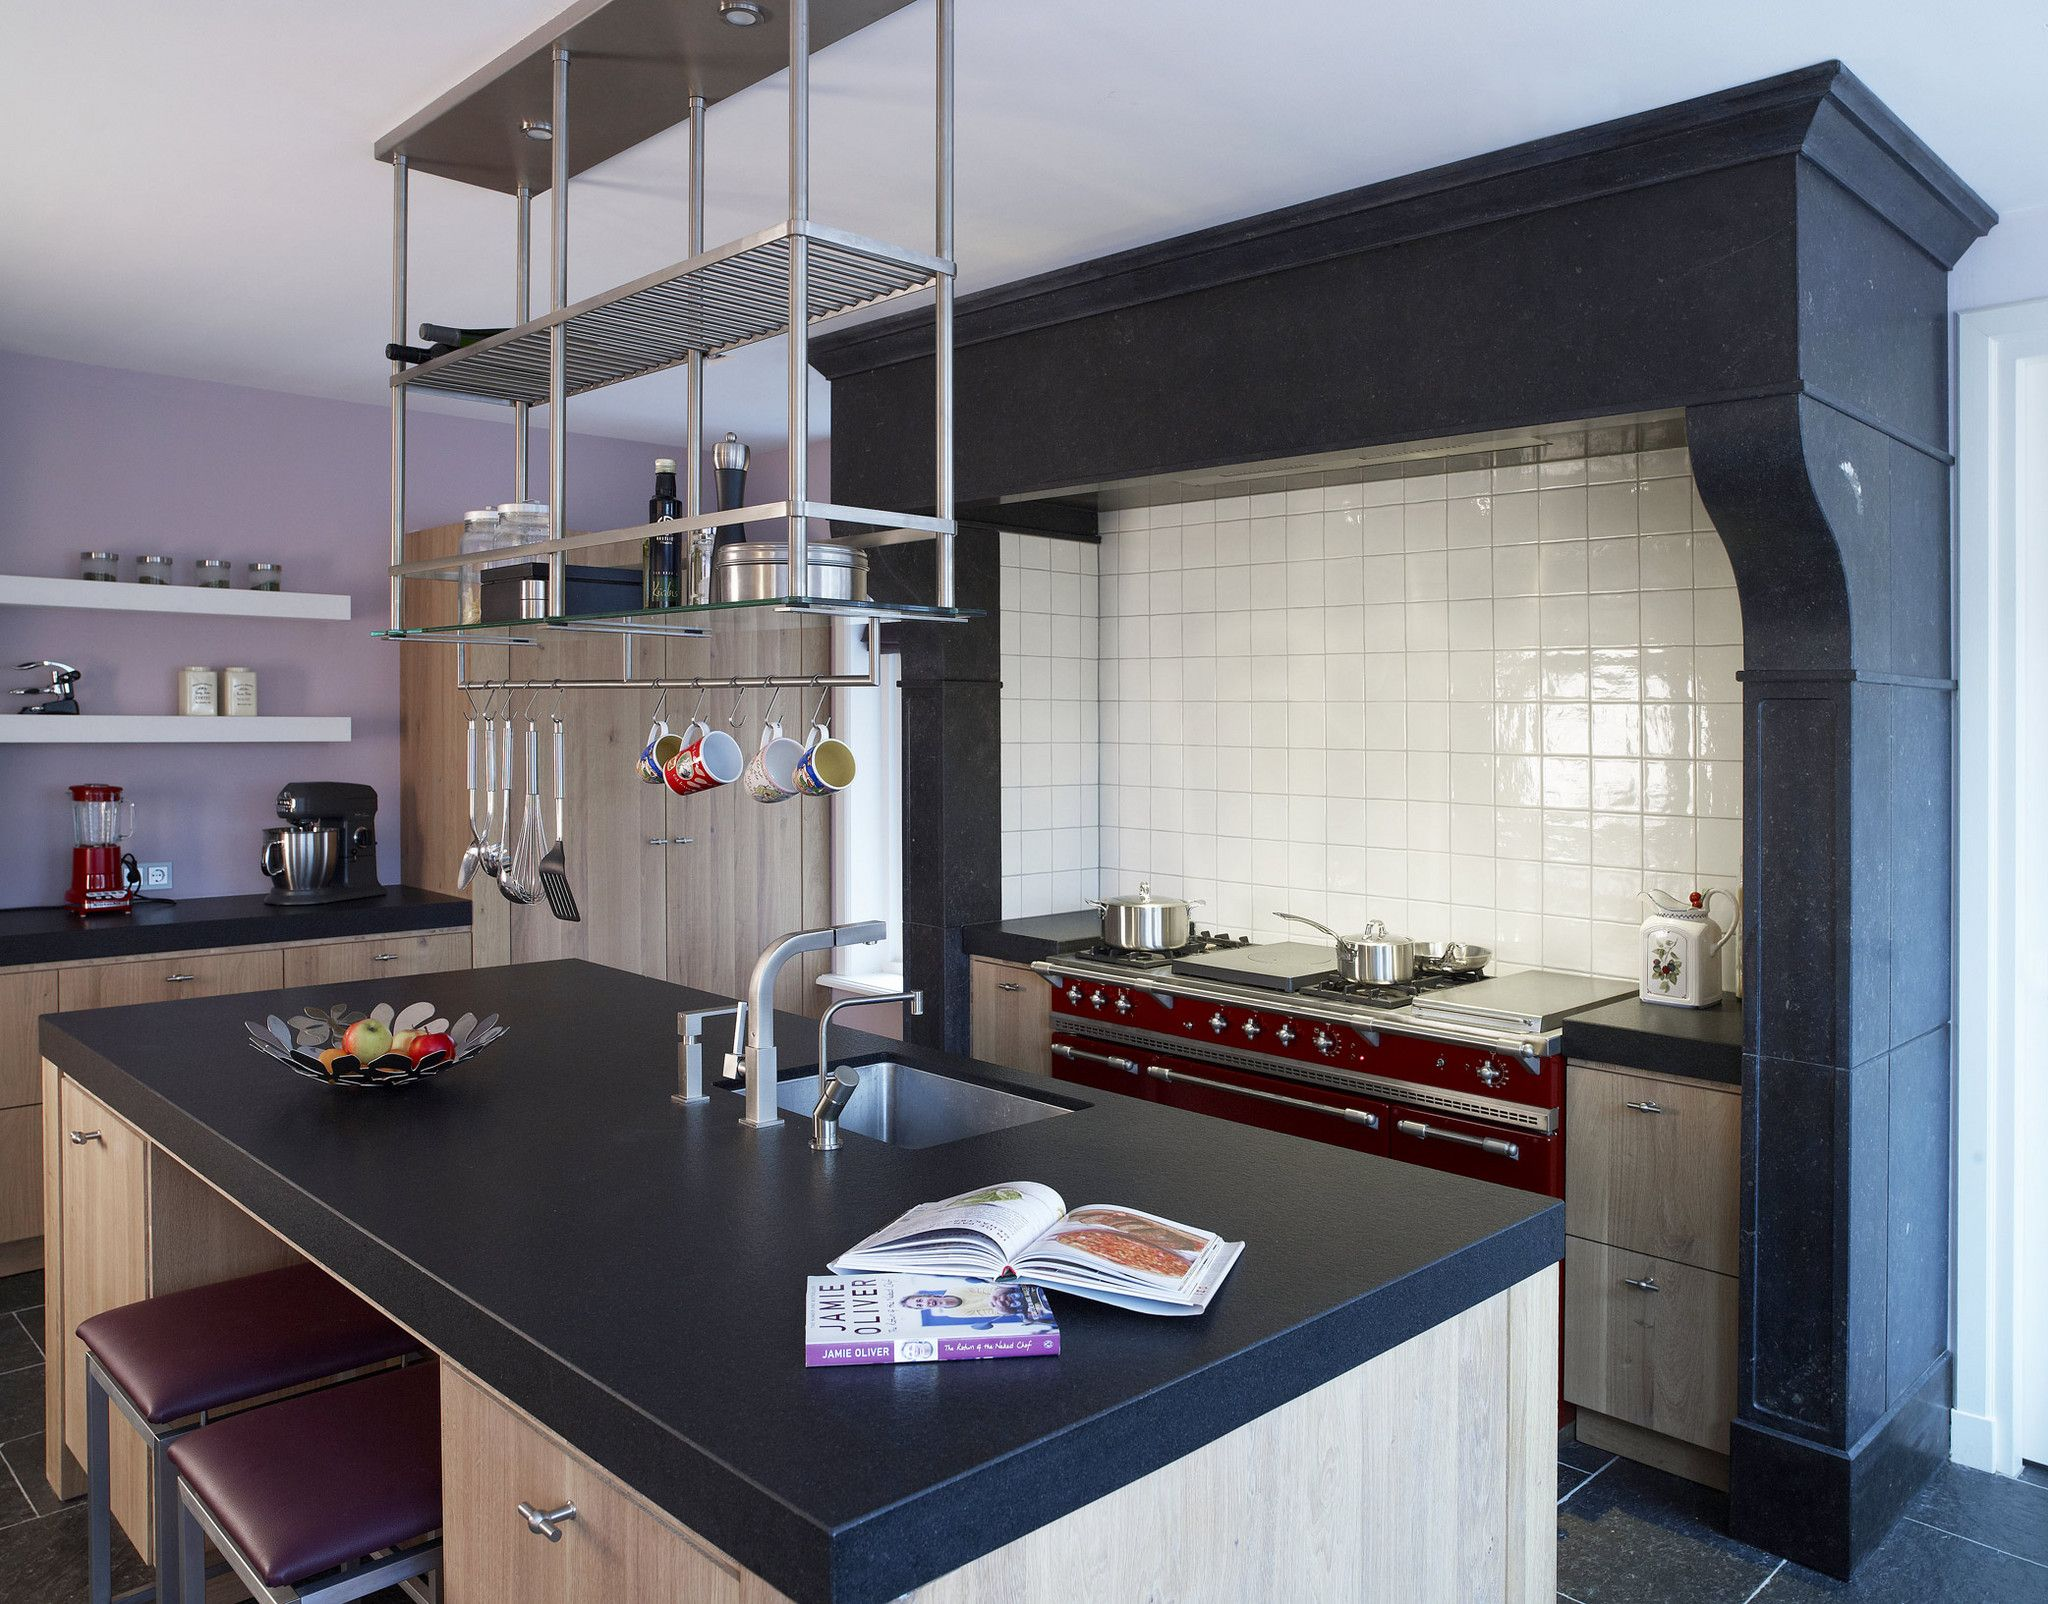 Kitchens And Interiors Culimaat High End Kitchens Interiors Italiaanse Keukens En